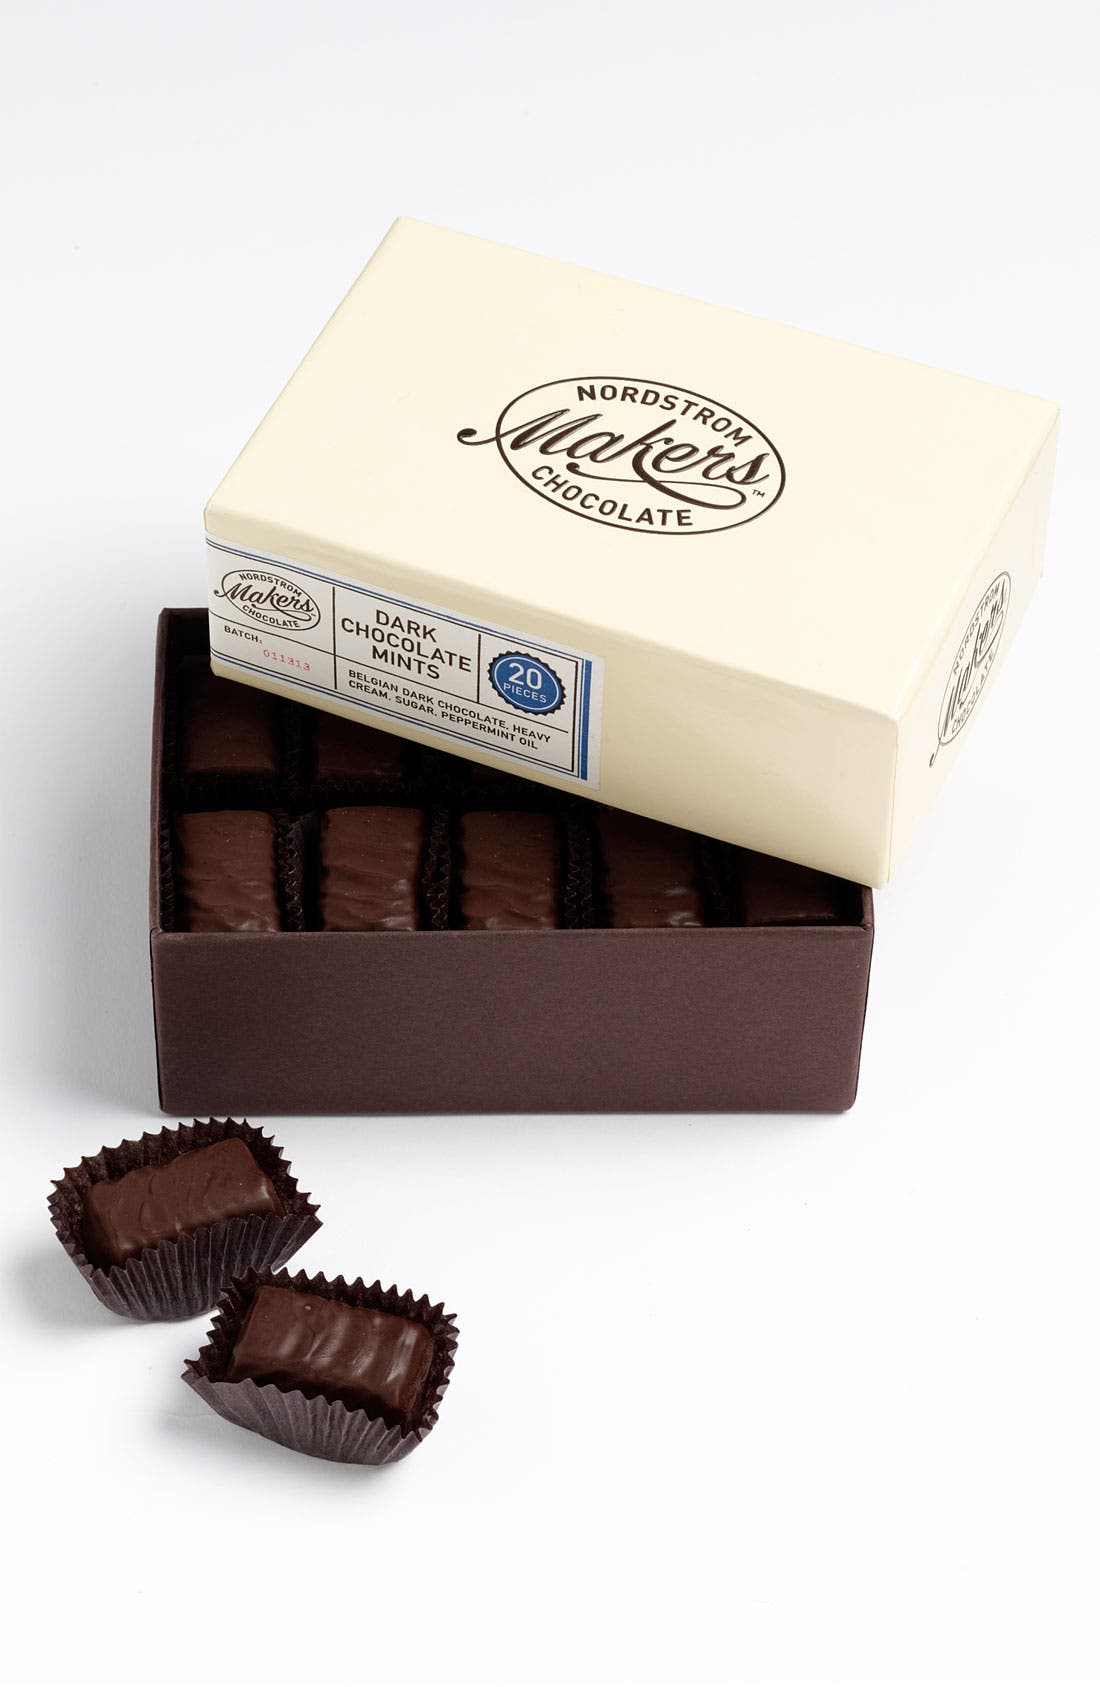 NORDSTROM MAKERS CHOCOLATE Dark Chocolate Mints